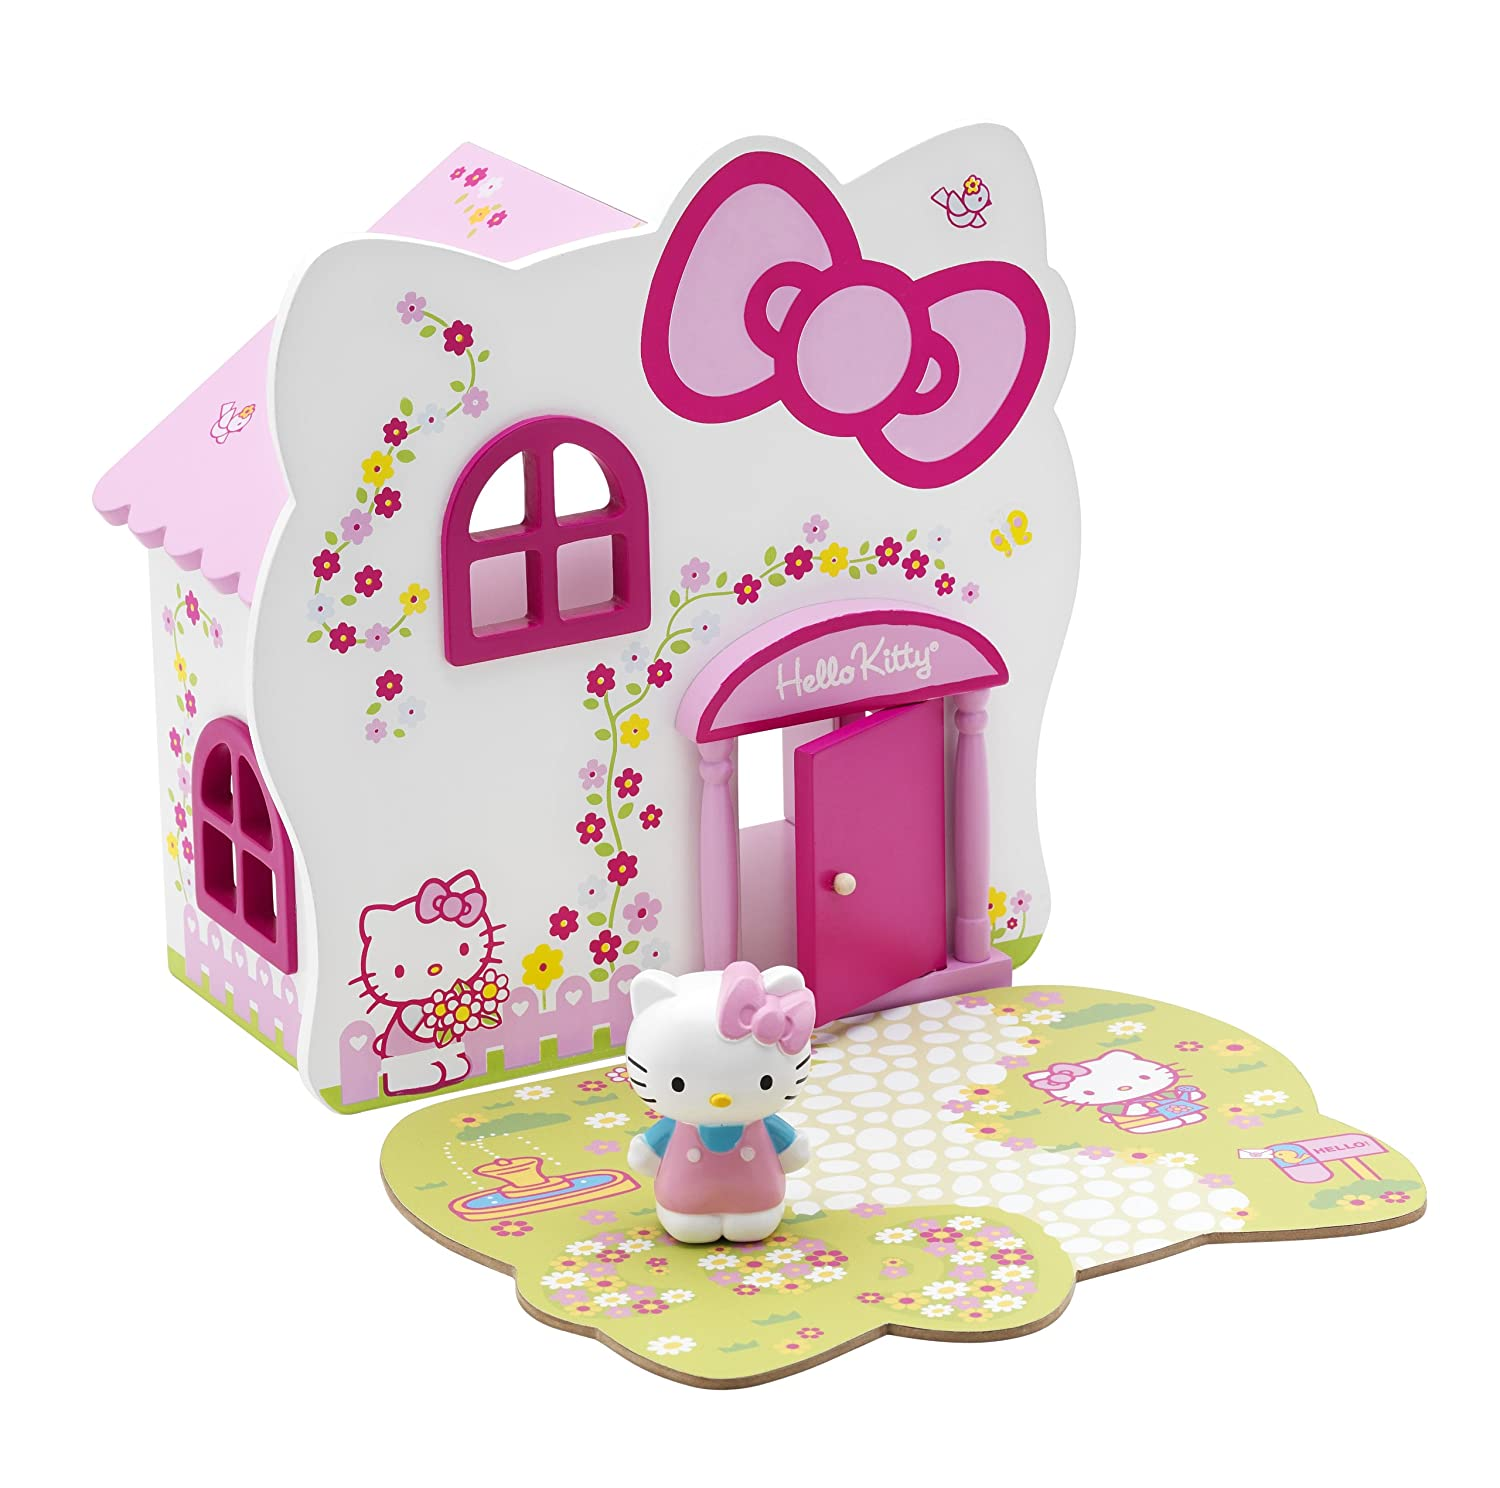 Hello Kitty Country Cottage with Figurine